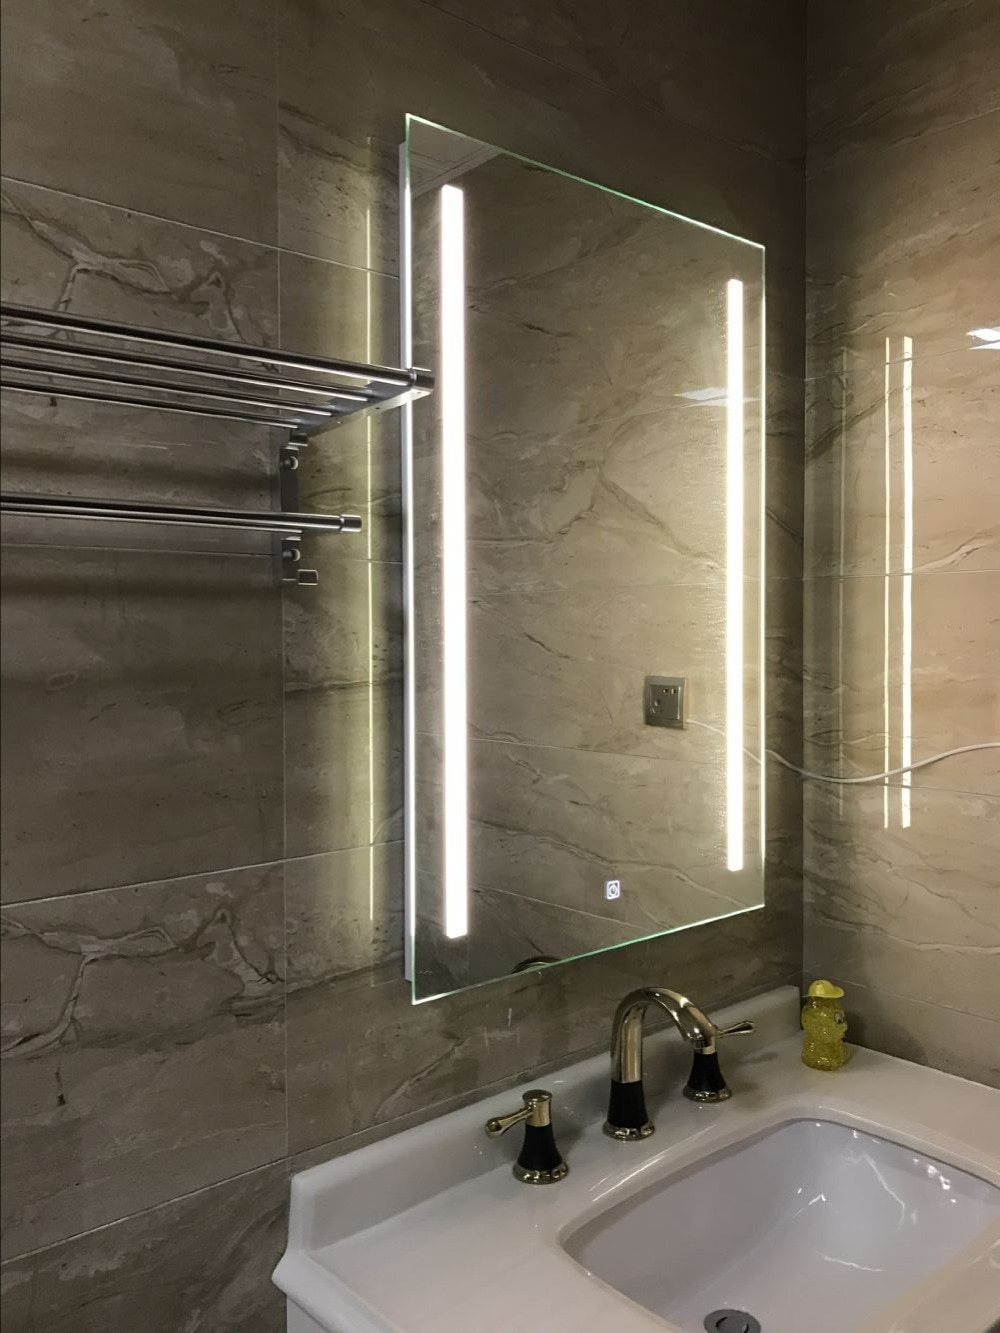 [%Us $180.0 10% Off|Waterproof Wall Mount Led Lighted Bathroom Mirror Vanity Defogger 2 Vertical Lights Rectangular Touch Light Mirror Bath Mirrors In Pertaining To Preferred Lighted Bathroom Wall Mirrors|Lighted Bathroom Wall Mirrors For 2019 Us $180.0 10% Off|Waterproof Wall Mount Led Lighted Bathroom Mirror Vanity Defogger 2 Vertical Lights Rectangular Touch Light Mirror Bath Mirrors In|Well Liked Lighted Bathroom Wall Mirrors For Us $180.0 10% Off|Waterproof Wall Mount Led Lighted Bathroom Mirror Vanity Defogger 2 Vertical Lights Rectangular Touch Light Mirror Bath Mirrors In|2019 Us $ (View 17 of 20)